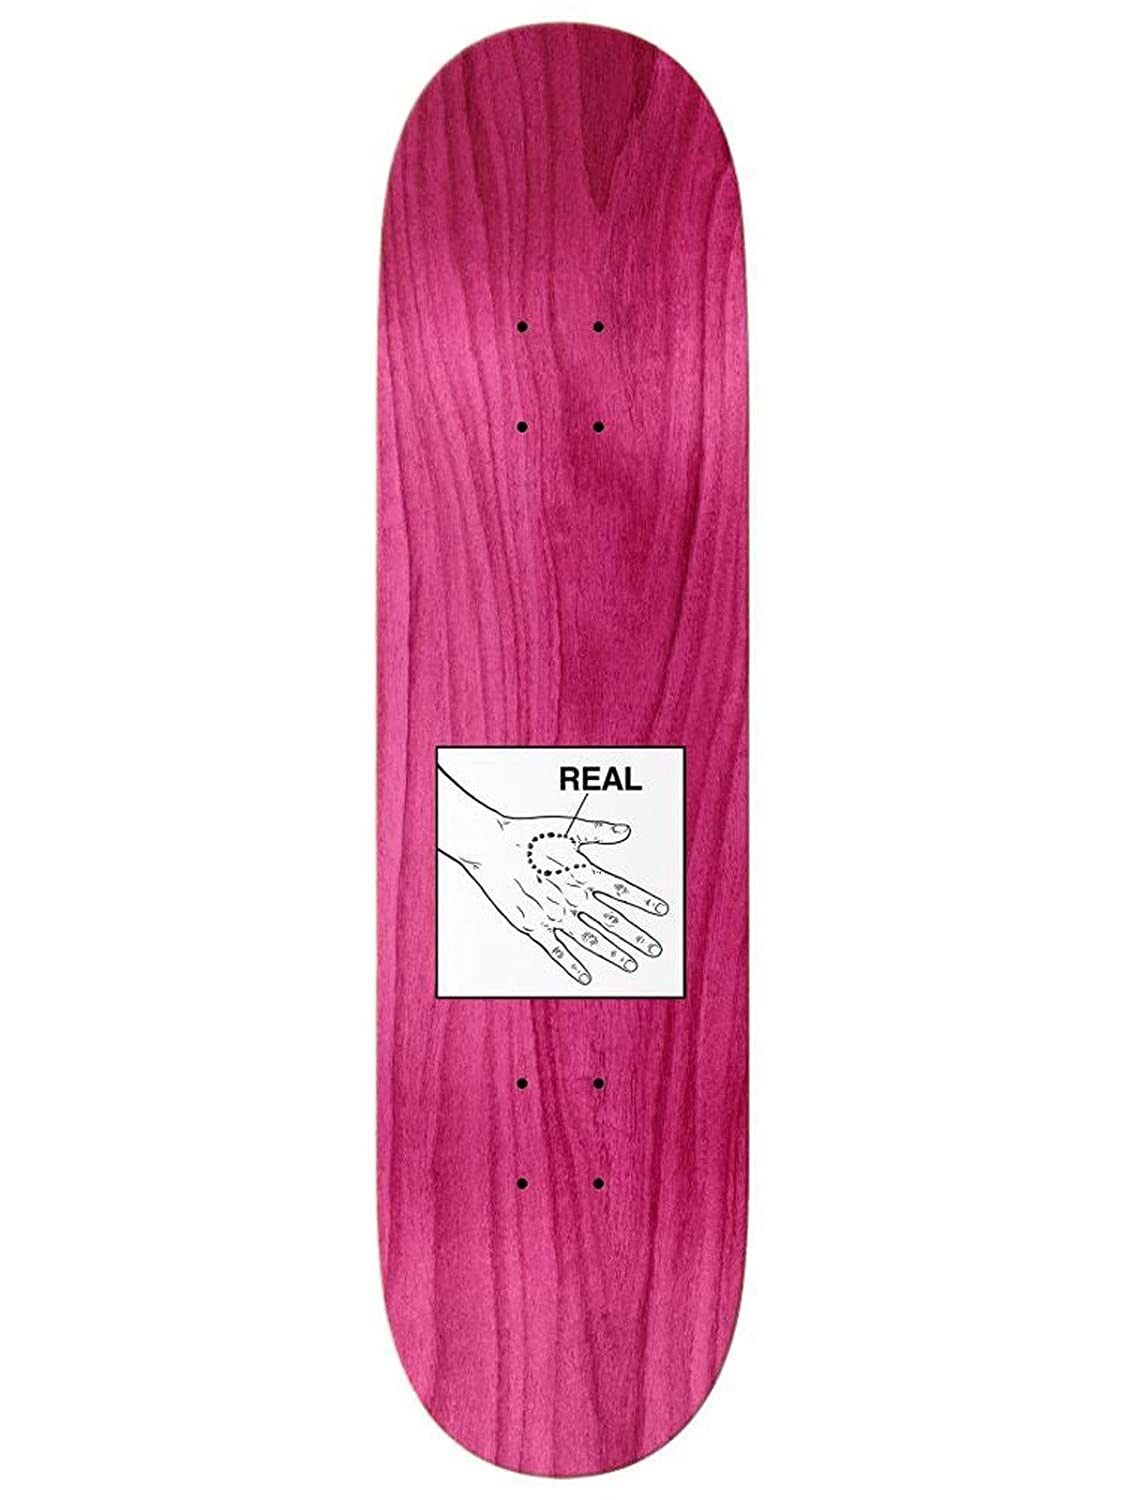 fb5062e390a45 Amazon.com : Real Busenitz Rabid Skateboard Deck - 8.25